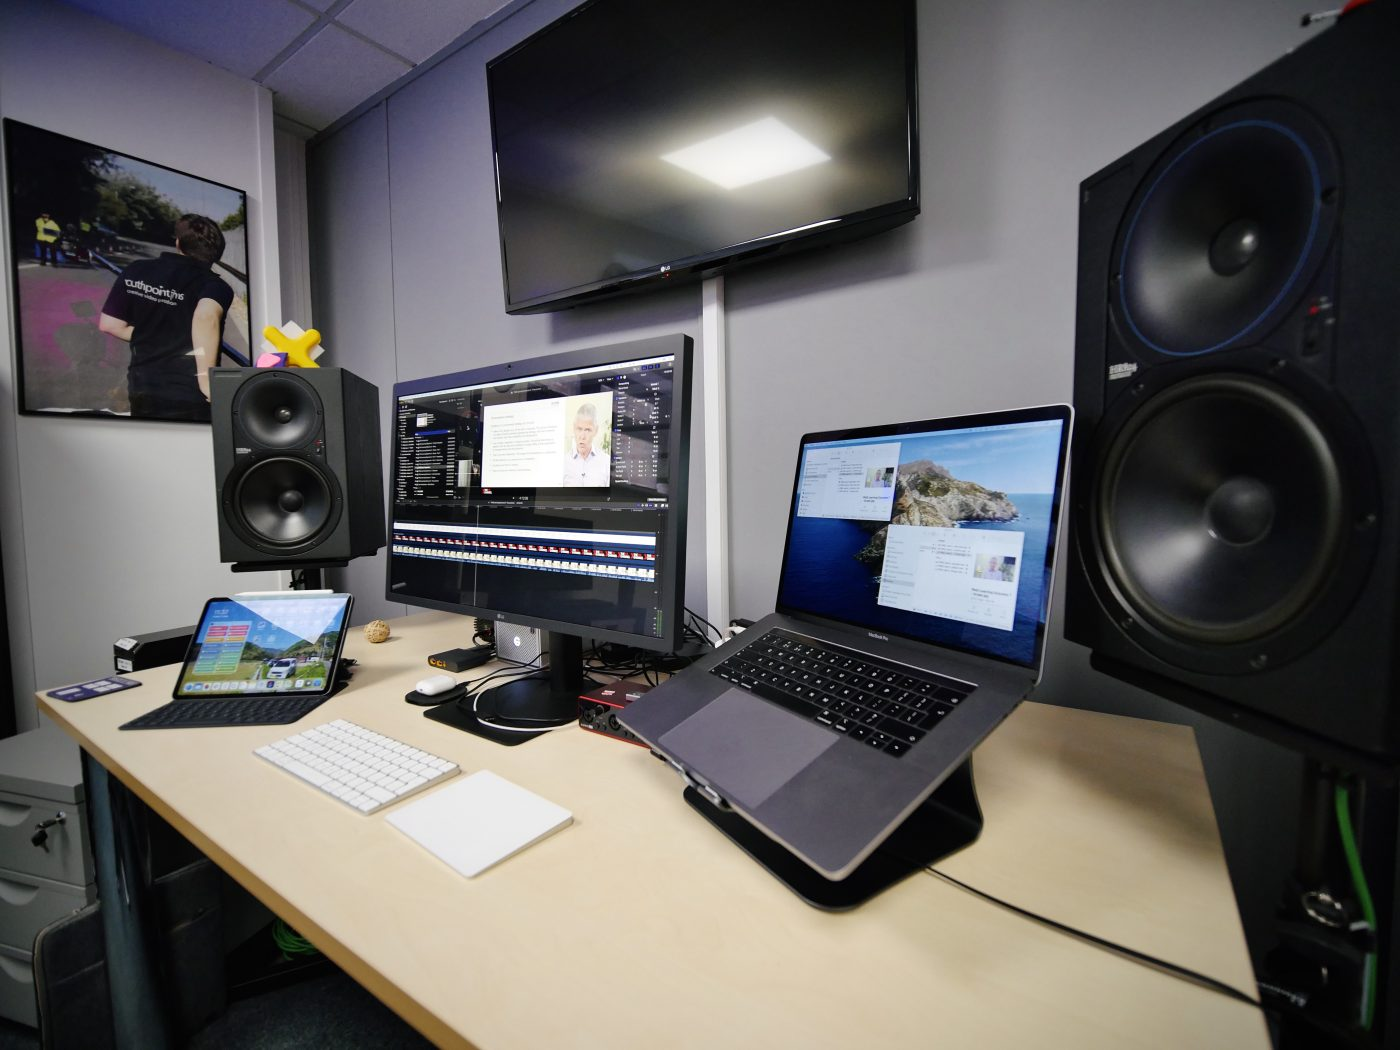 Our Edit Suite In Southampton, UK